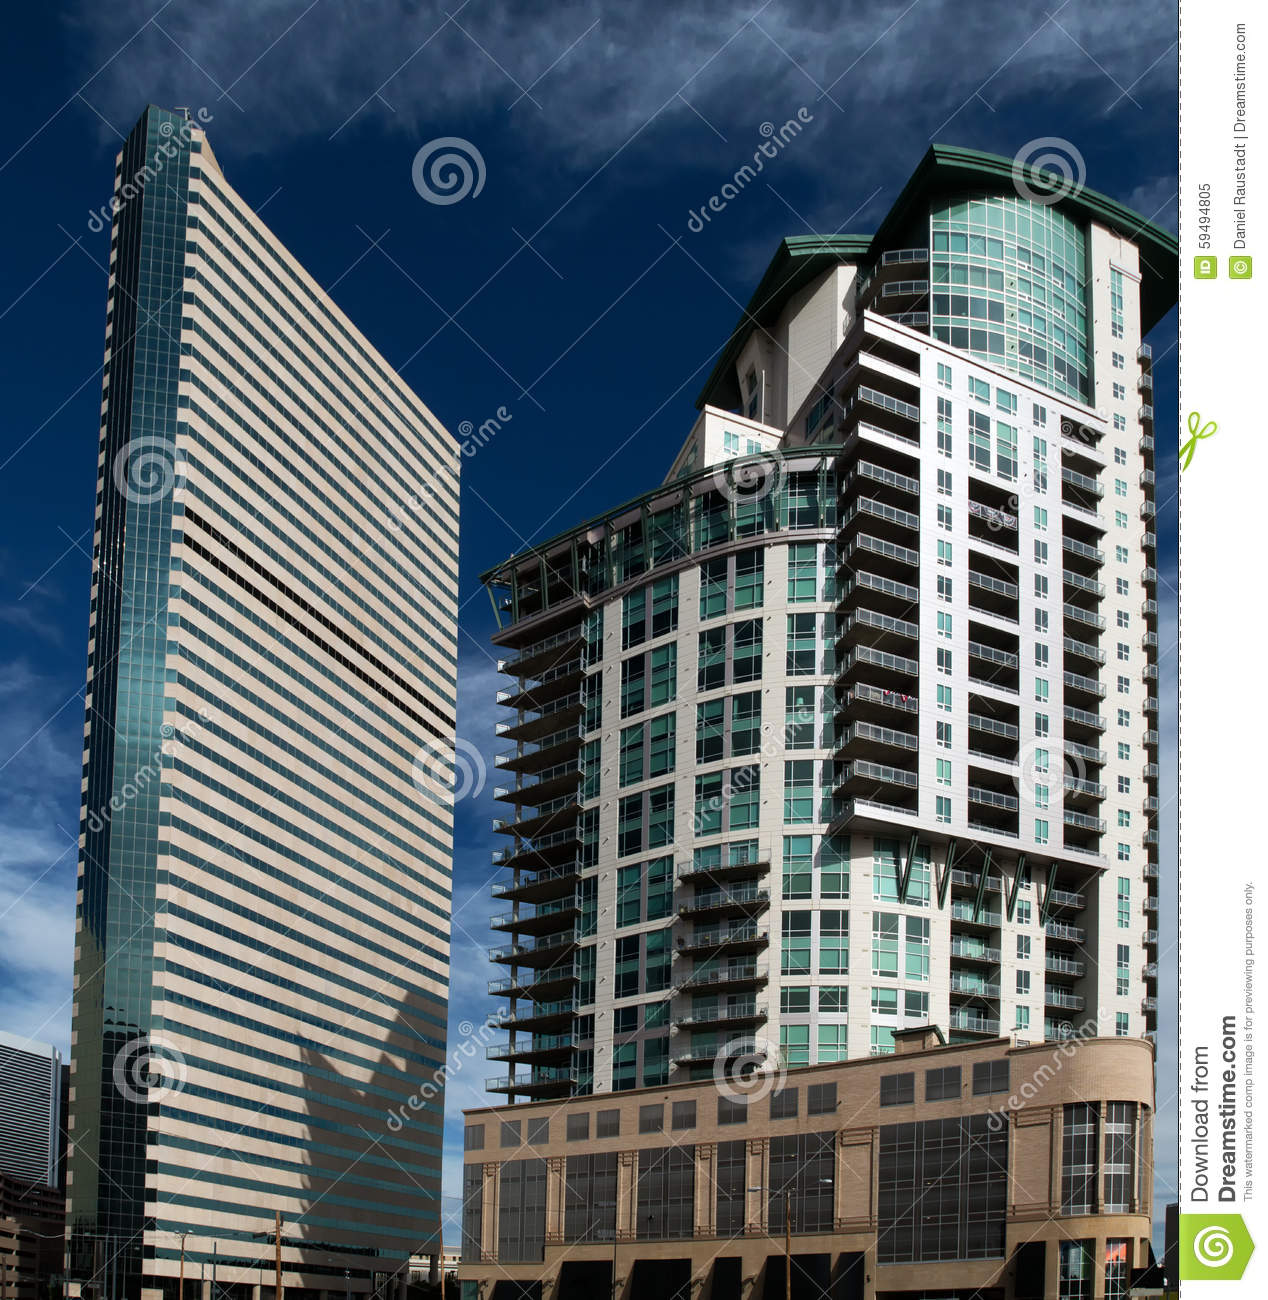 The Downtown Architecture Of Denver, Colorado Stock Photo